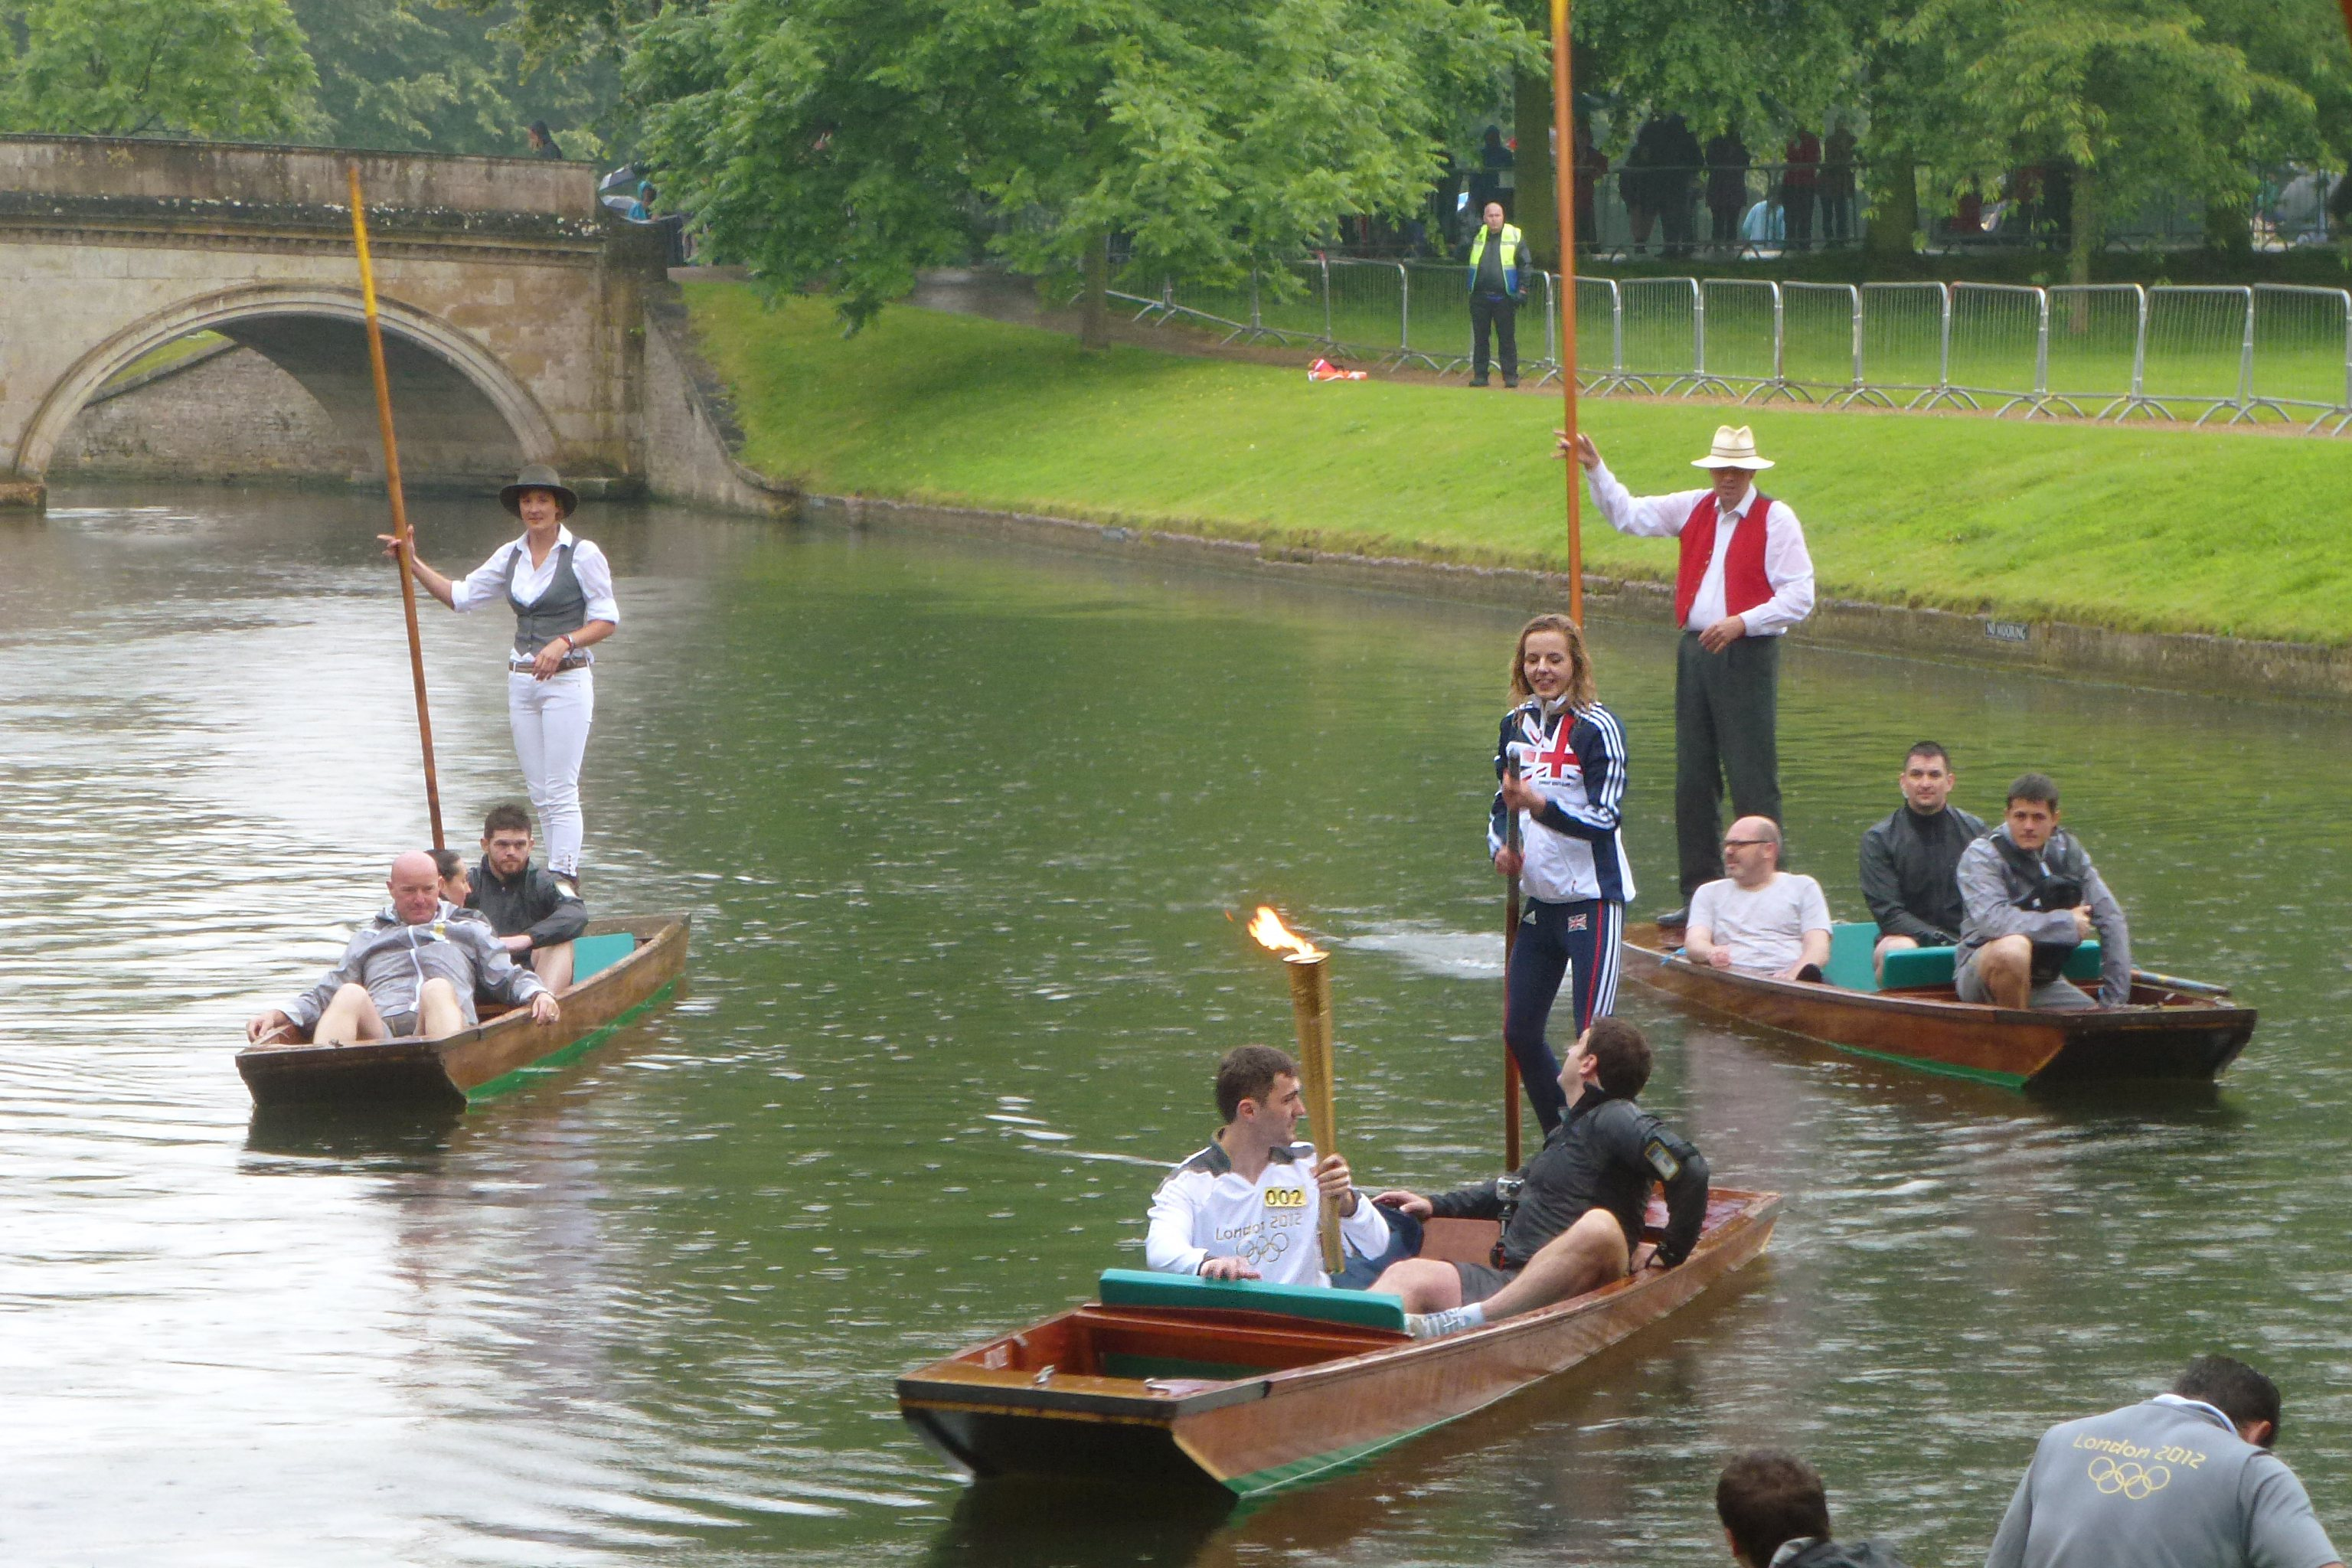 File:Cambridge Olympic torch on punt.jpg - Wikimedia Commons